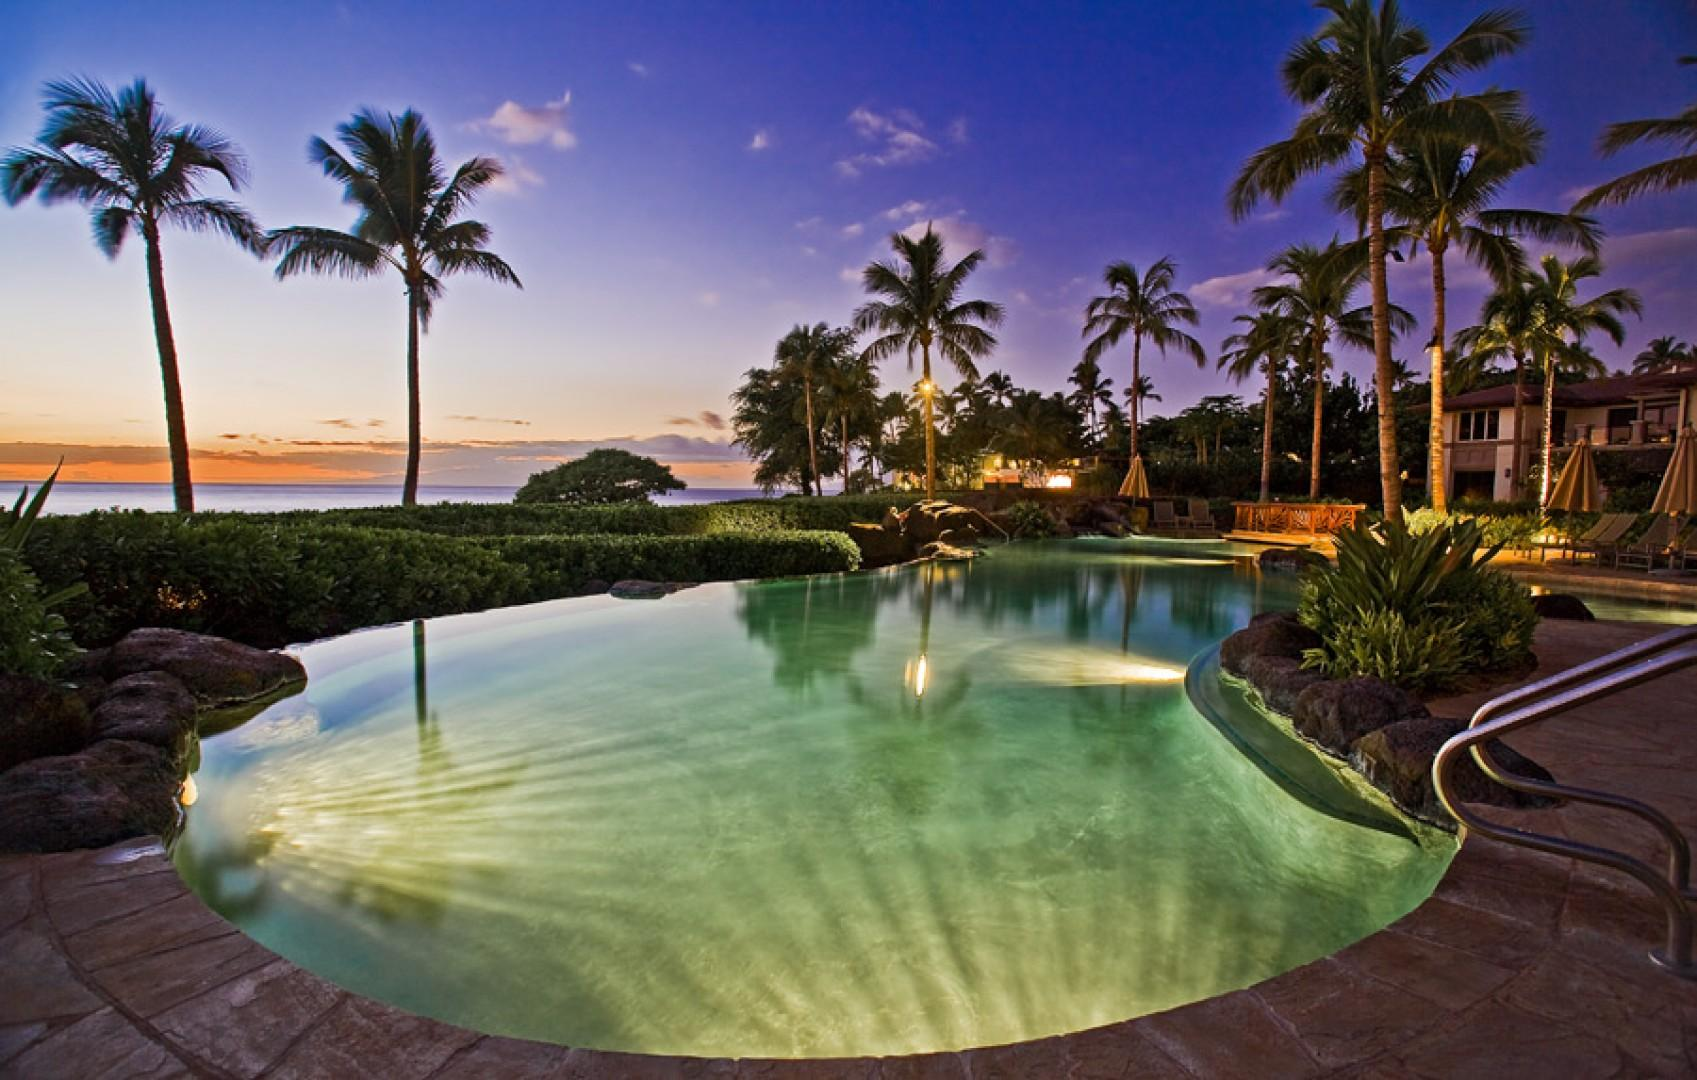 Twilight at the exceptional infinity-edge pool.